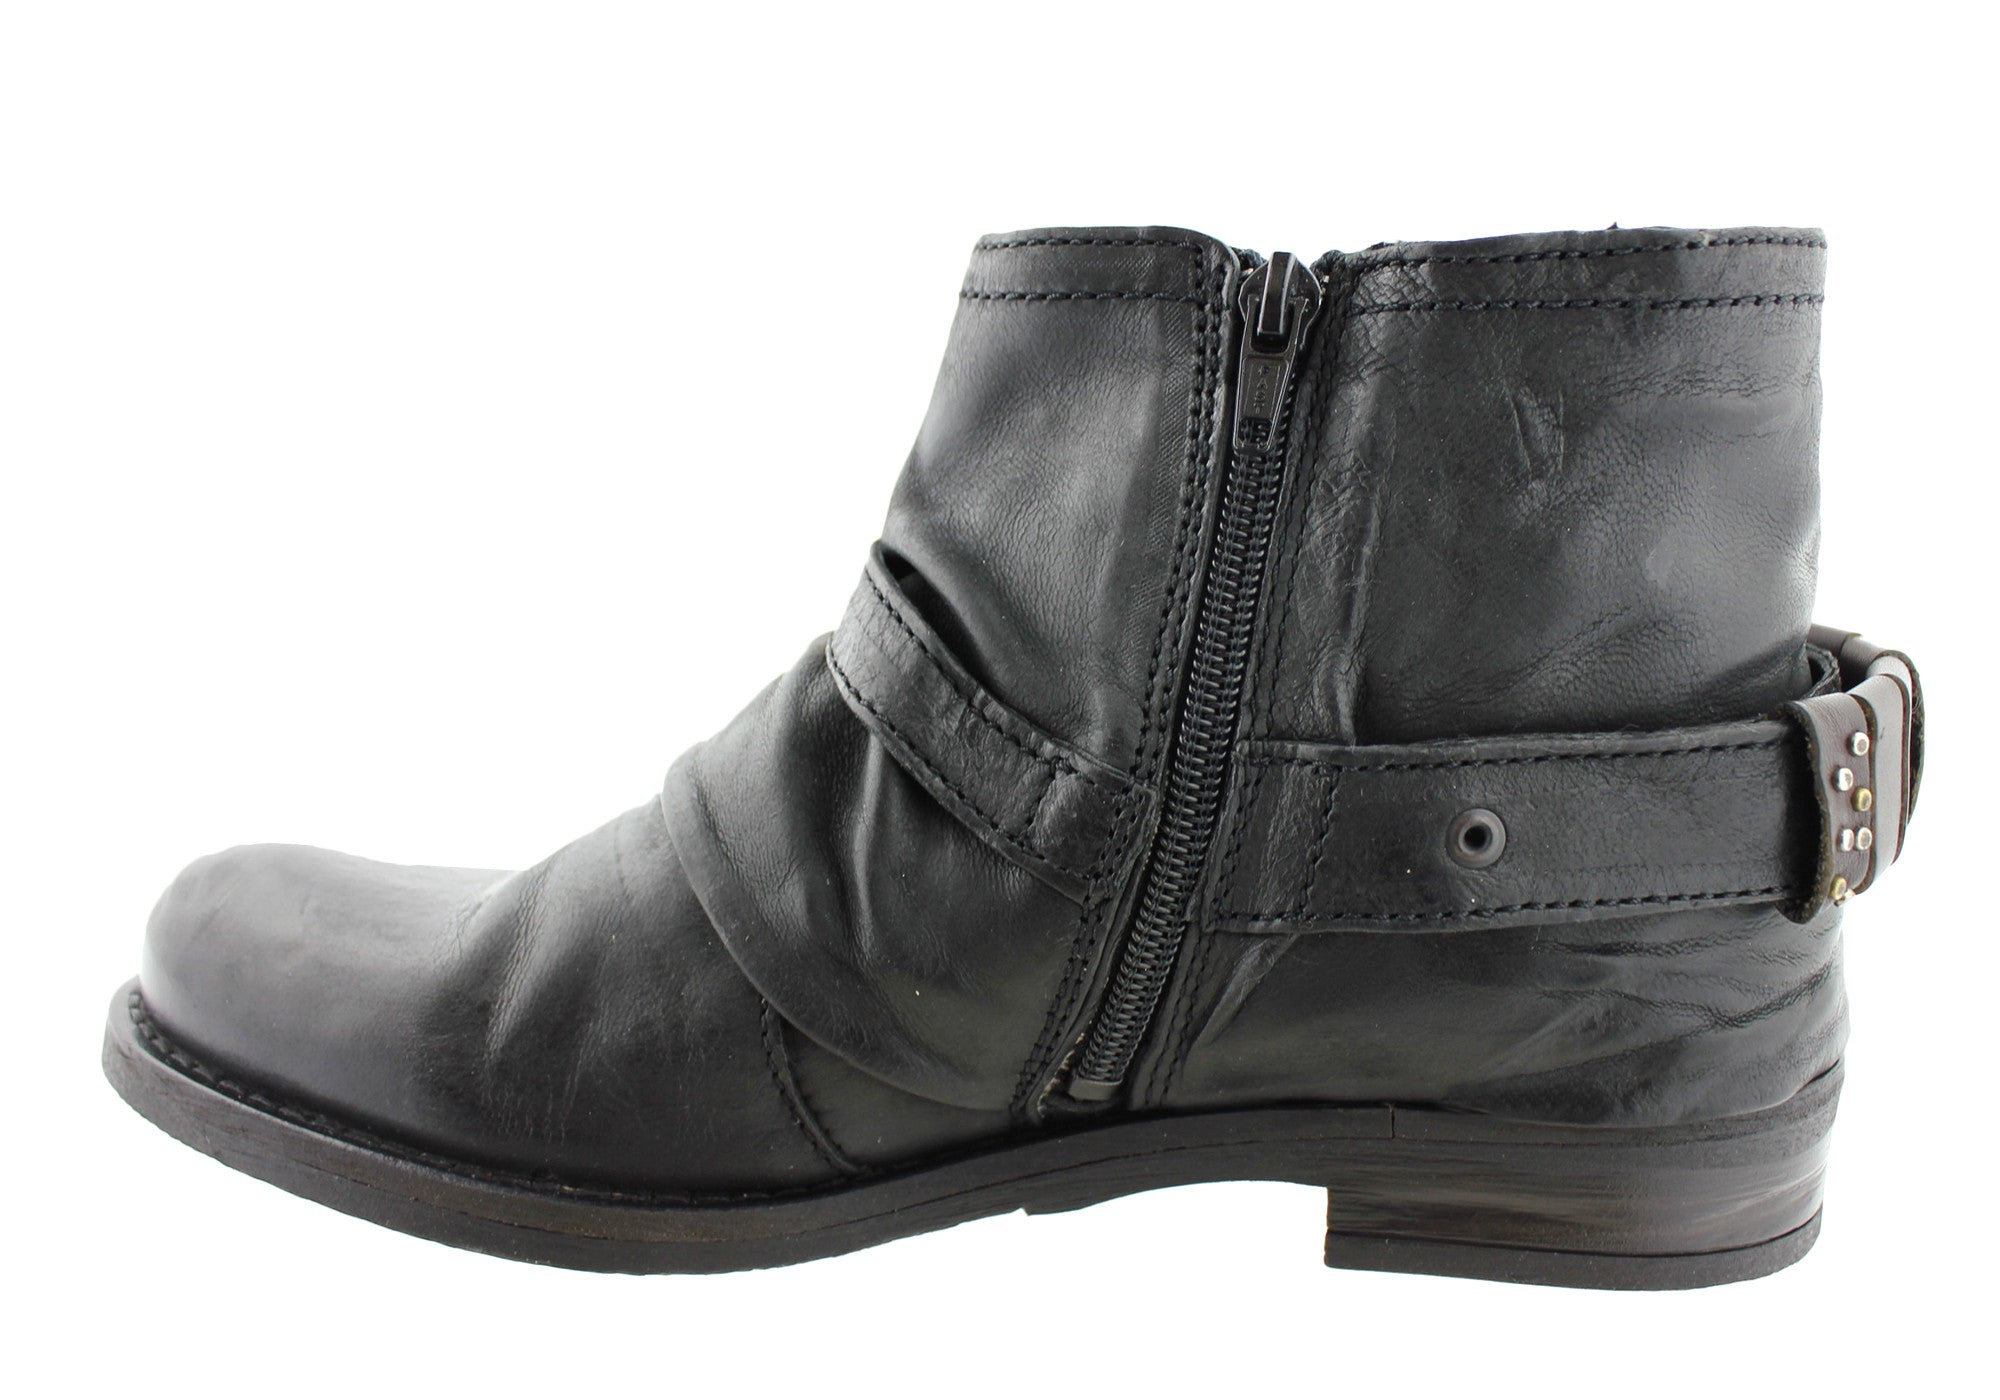 Misano Noris Womens Fashion Low Heel Ankle Boots